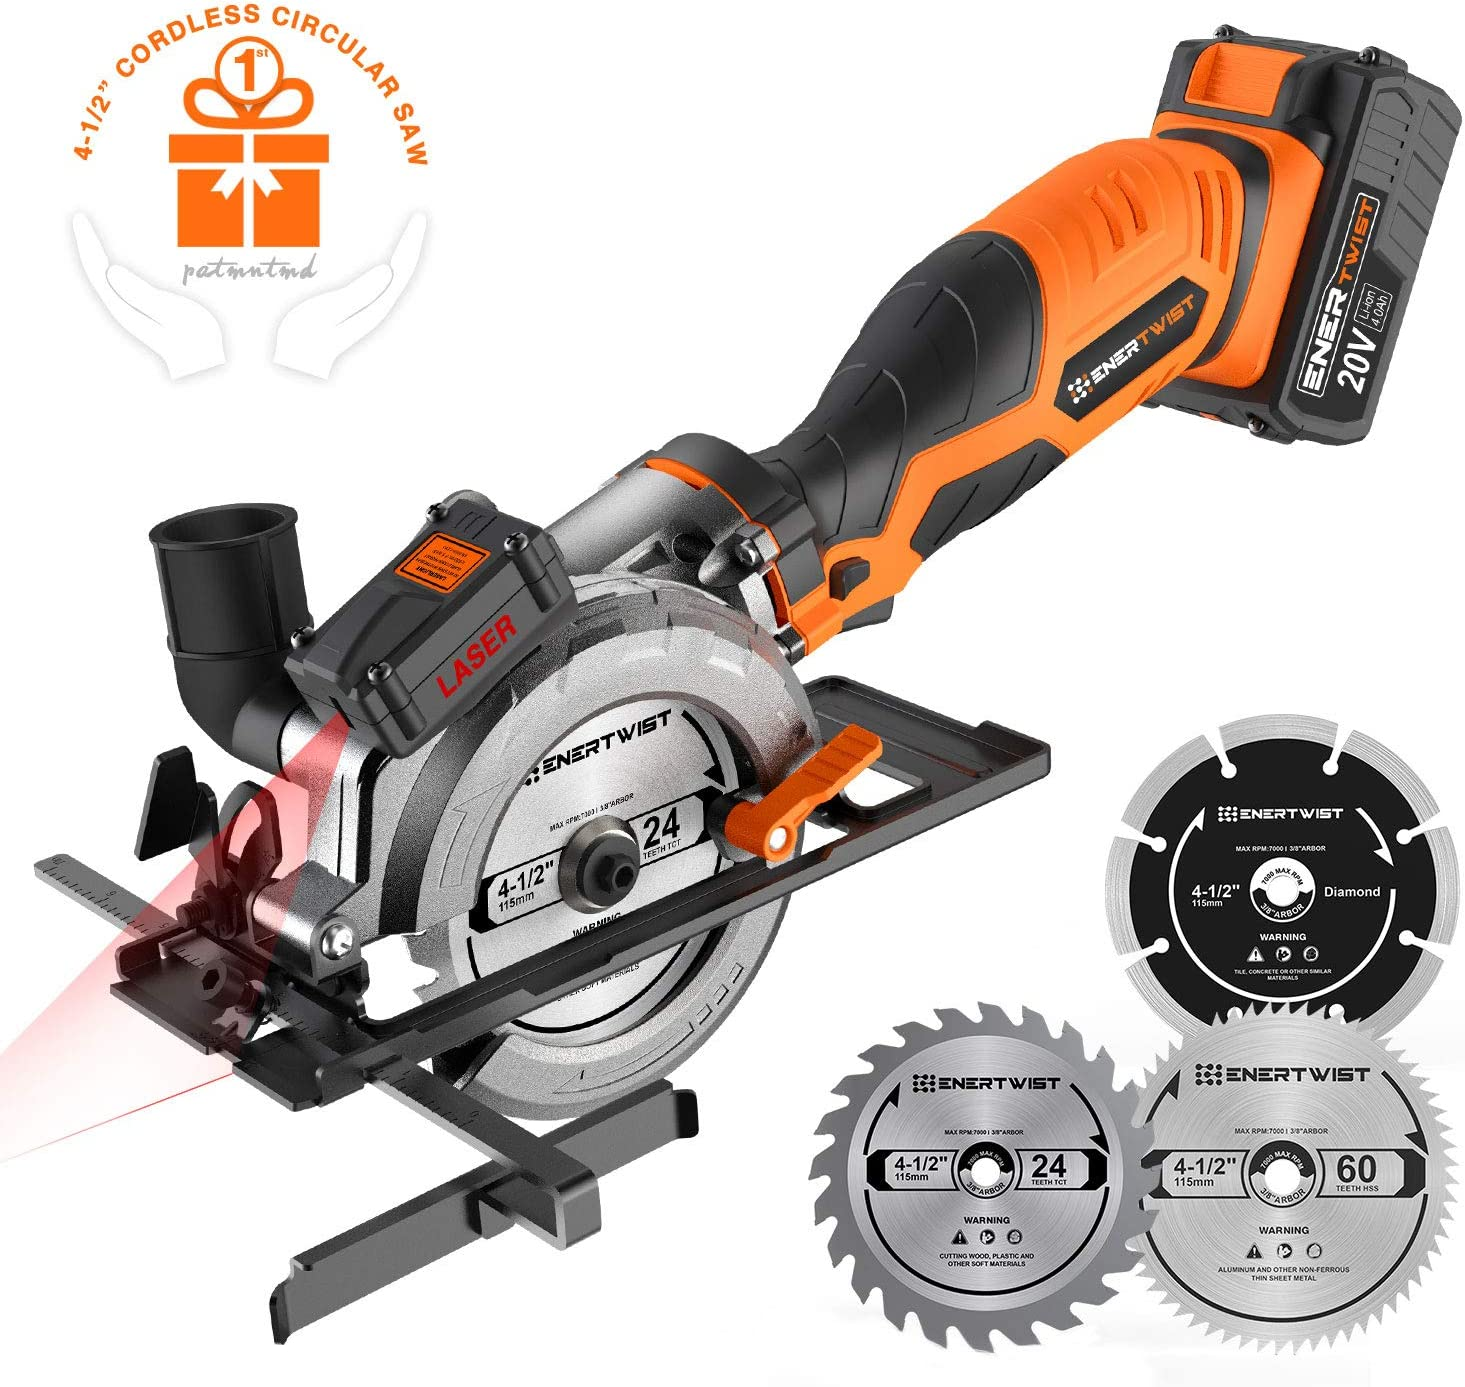 Enertwist 20V Max 4-1 2 Inch Cordless Compact Circular Saw Kit with 4.0Ah Lithium-ion Battery Charger, Vacuum Adaptor, Laser Parallel Guide, 3 Blades for Wood Plastic Metal Tile Cutting, ET-CS-20C